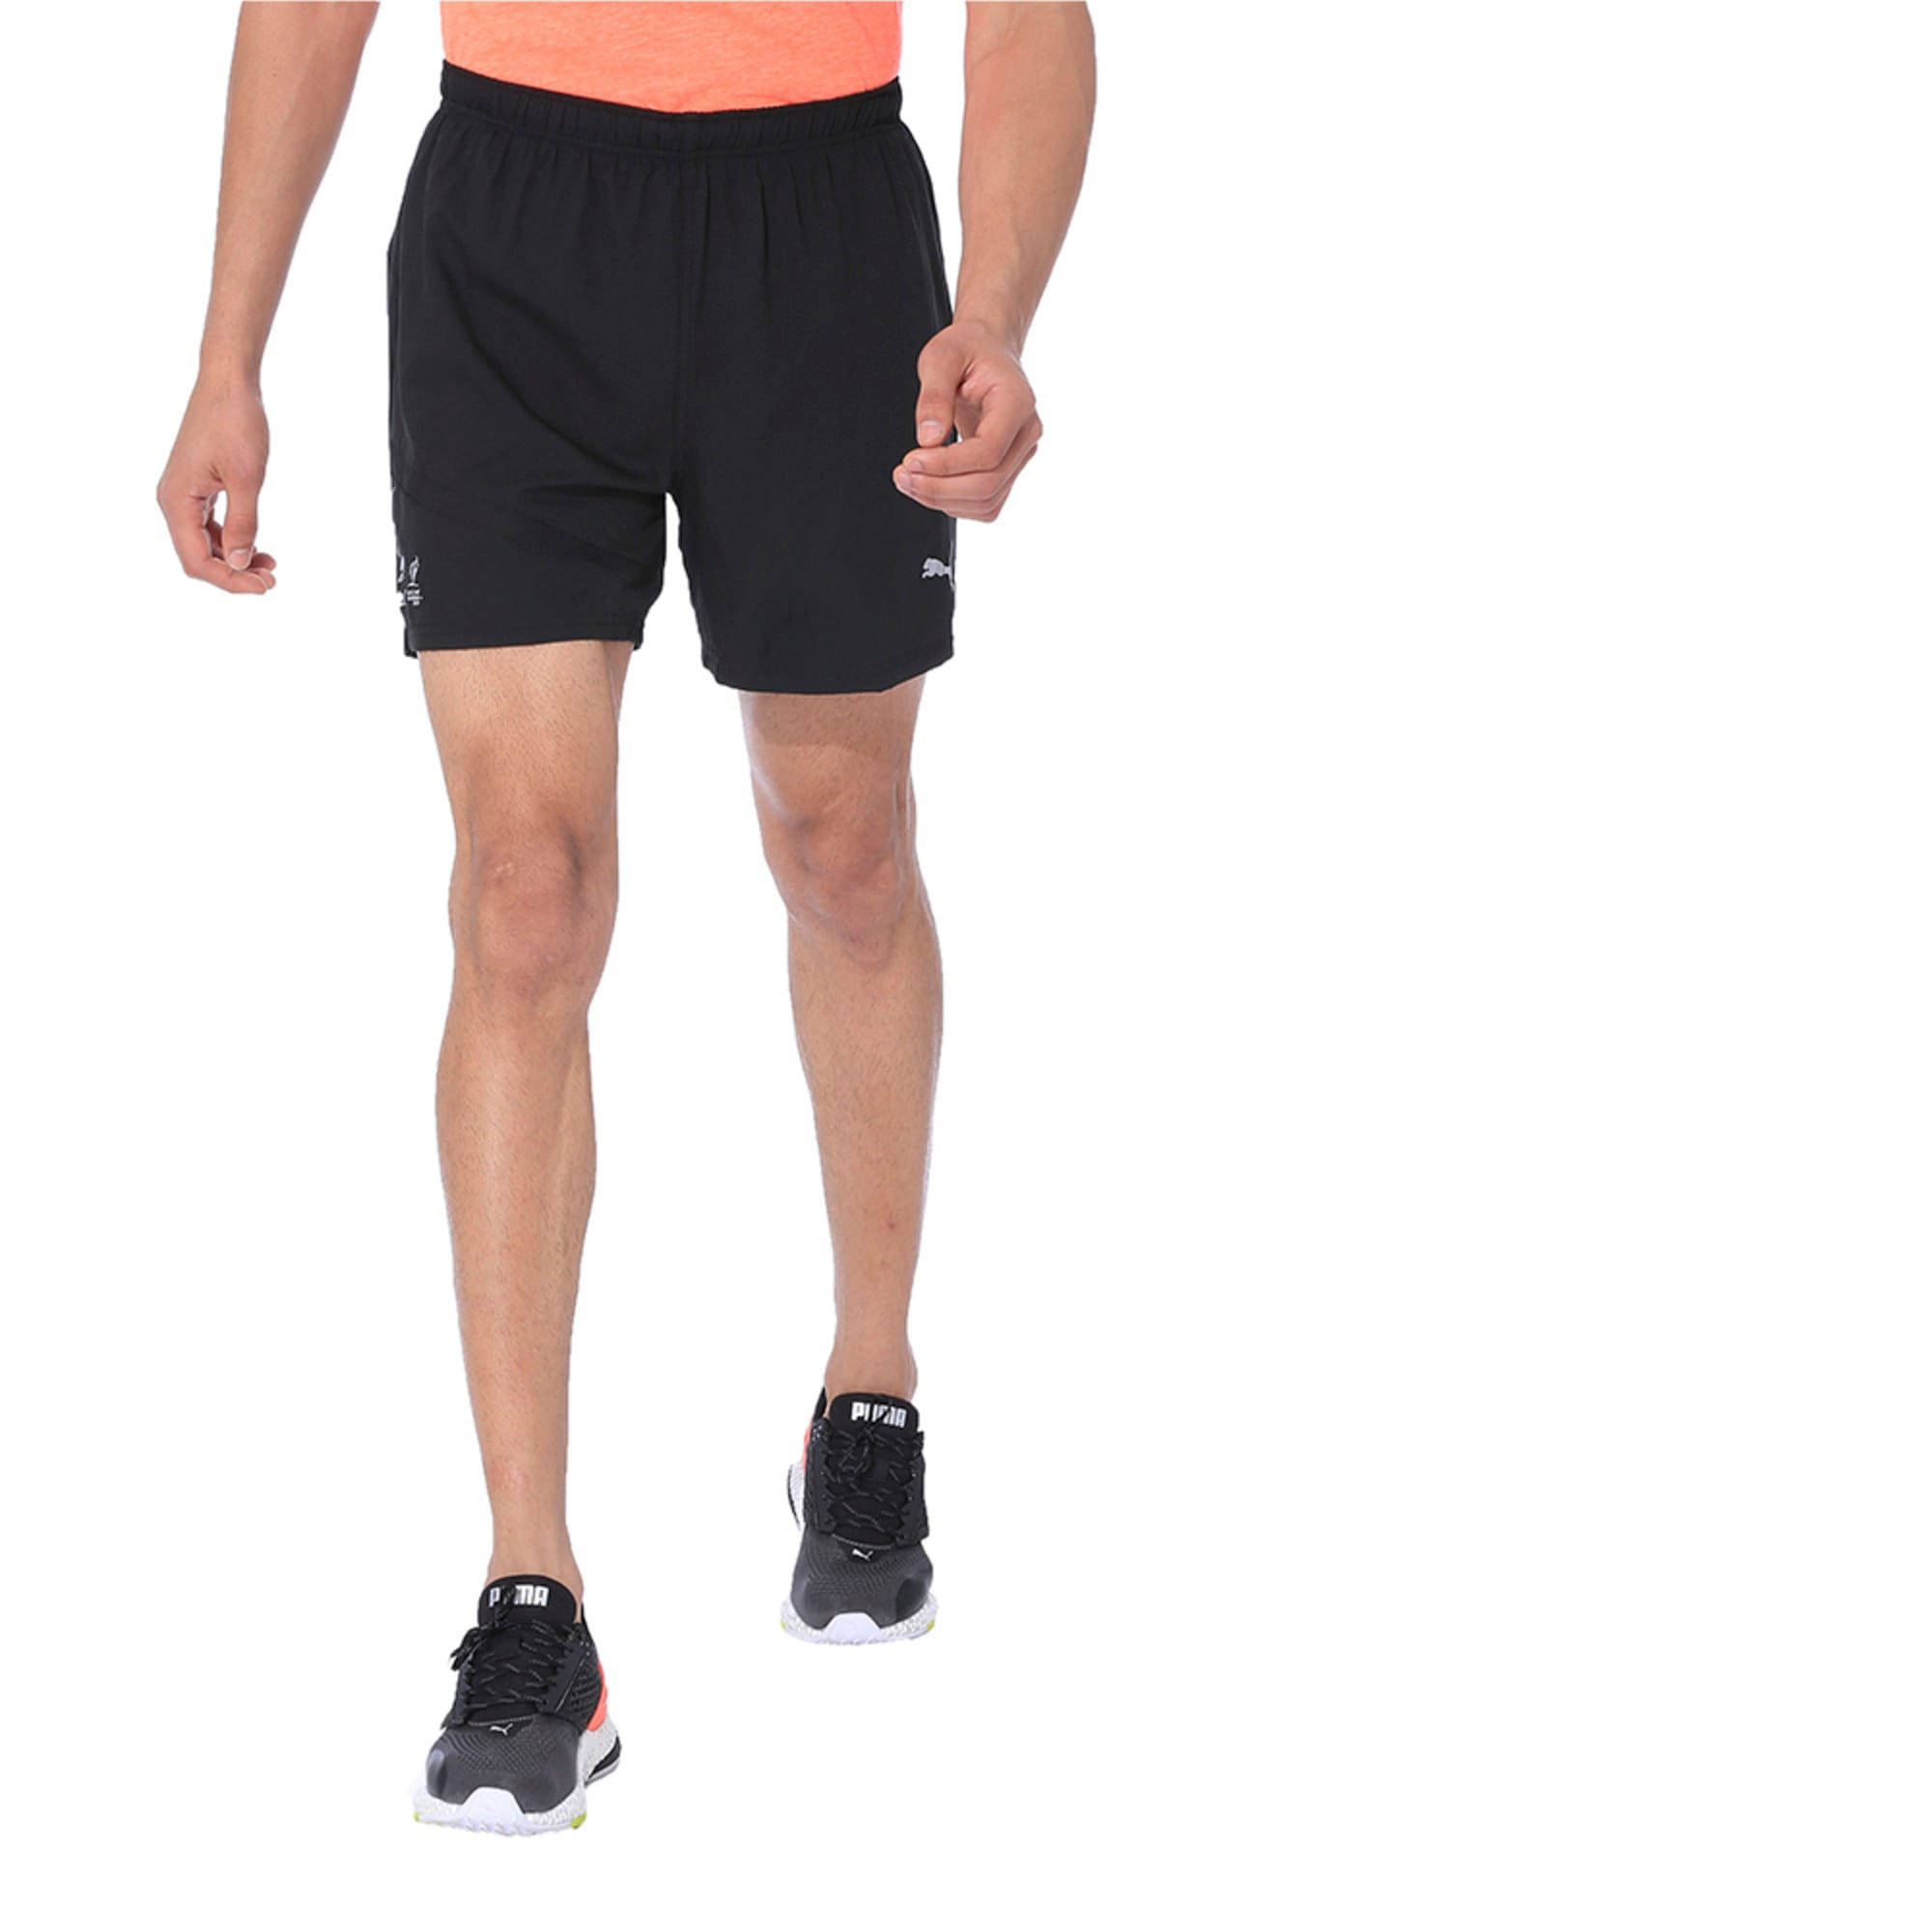 Thumbnail 3 of IGNITE Running Shorts, Puma Black, medium-IND